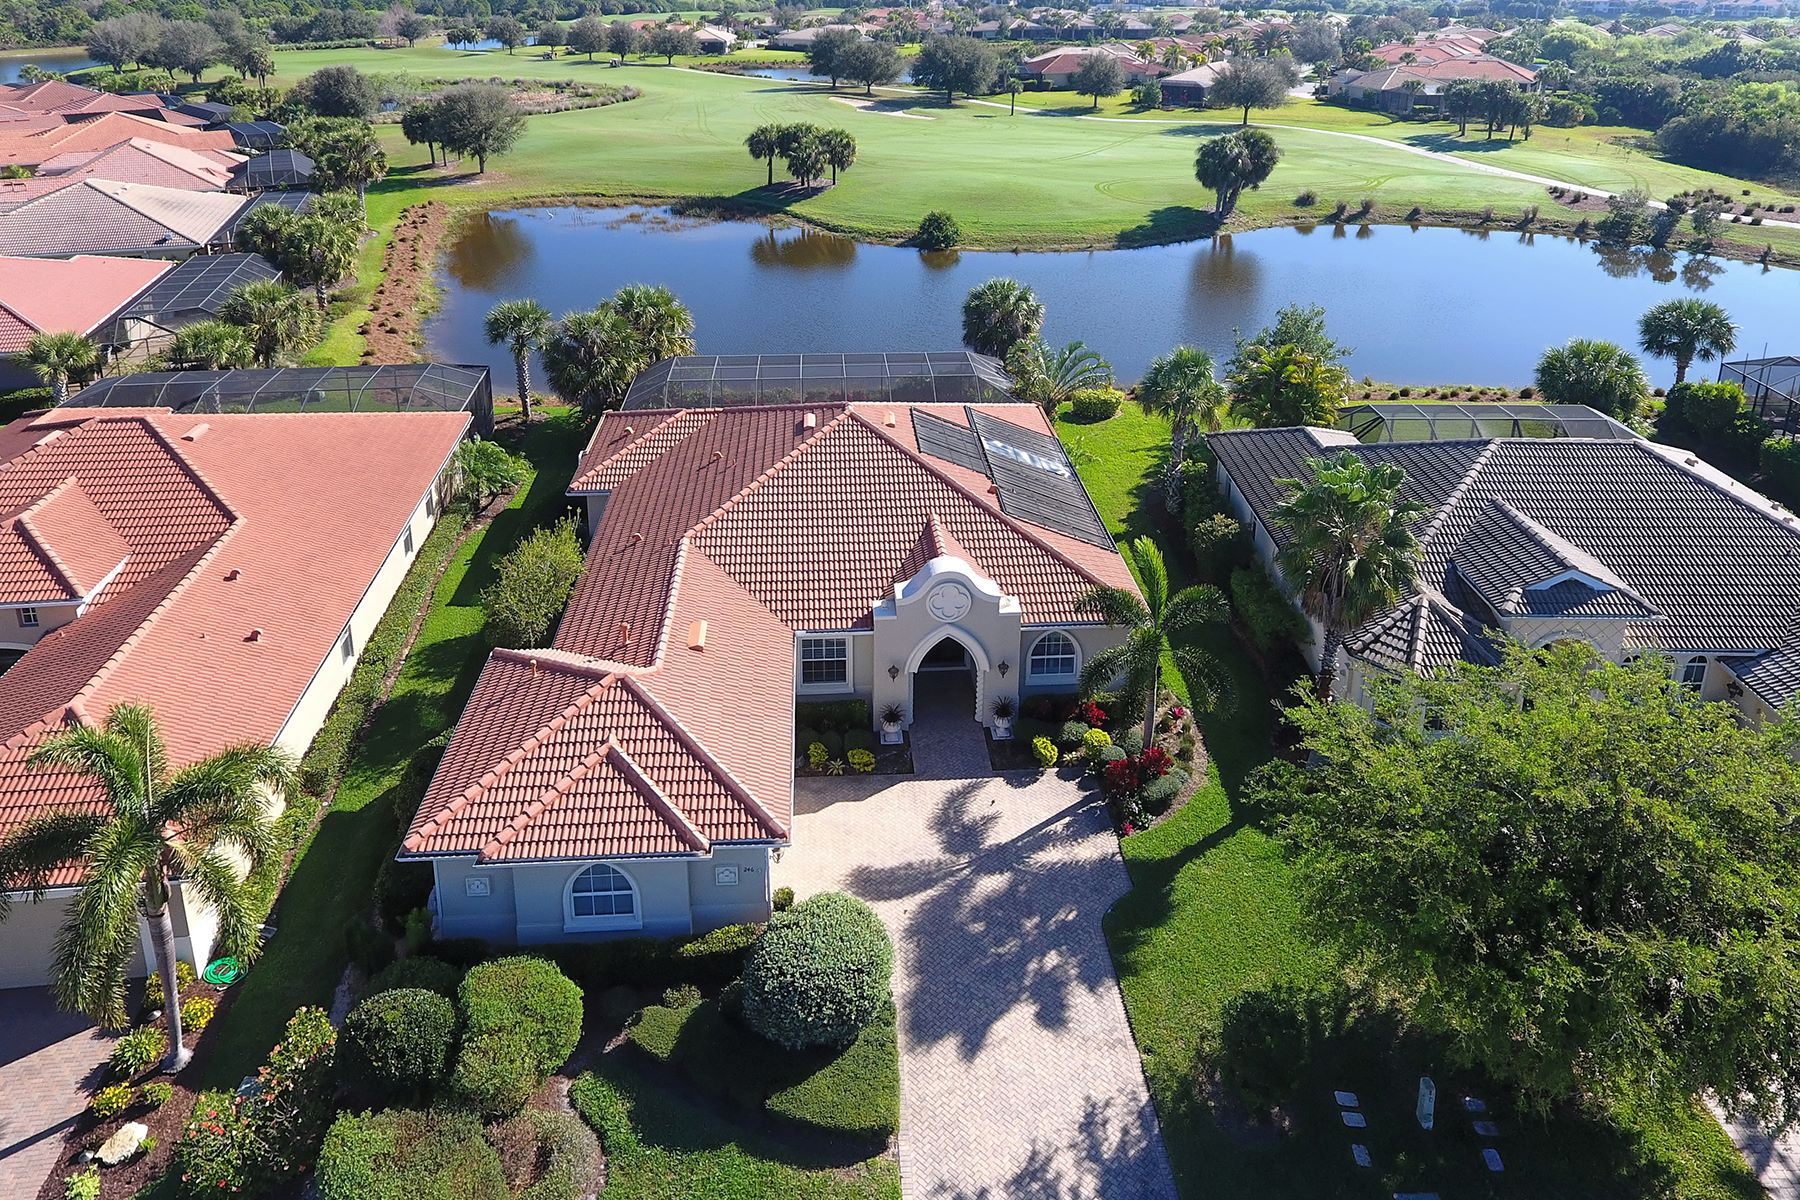 Casa Unifamiliar por un Venta en VENETIAN GOLF & RIVER CLUB 246 Martellago Dr North Venice, Florida, 34275 Estados Unidos